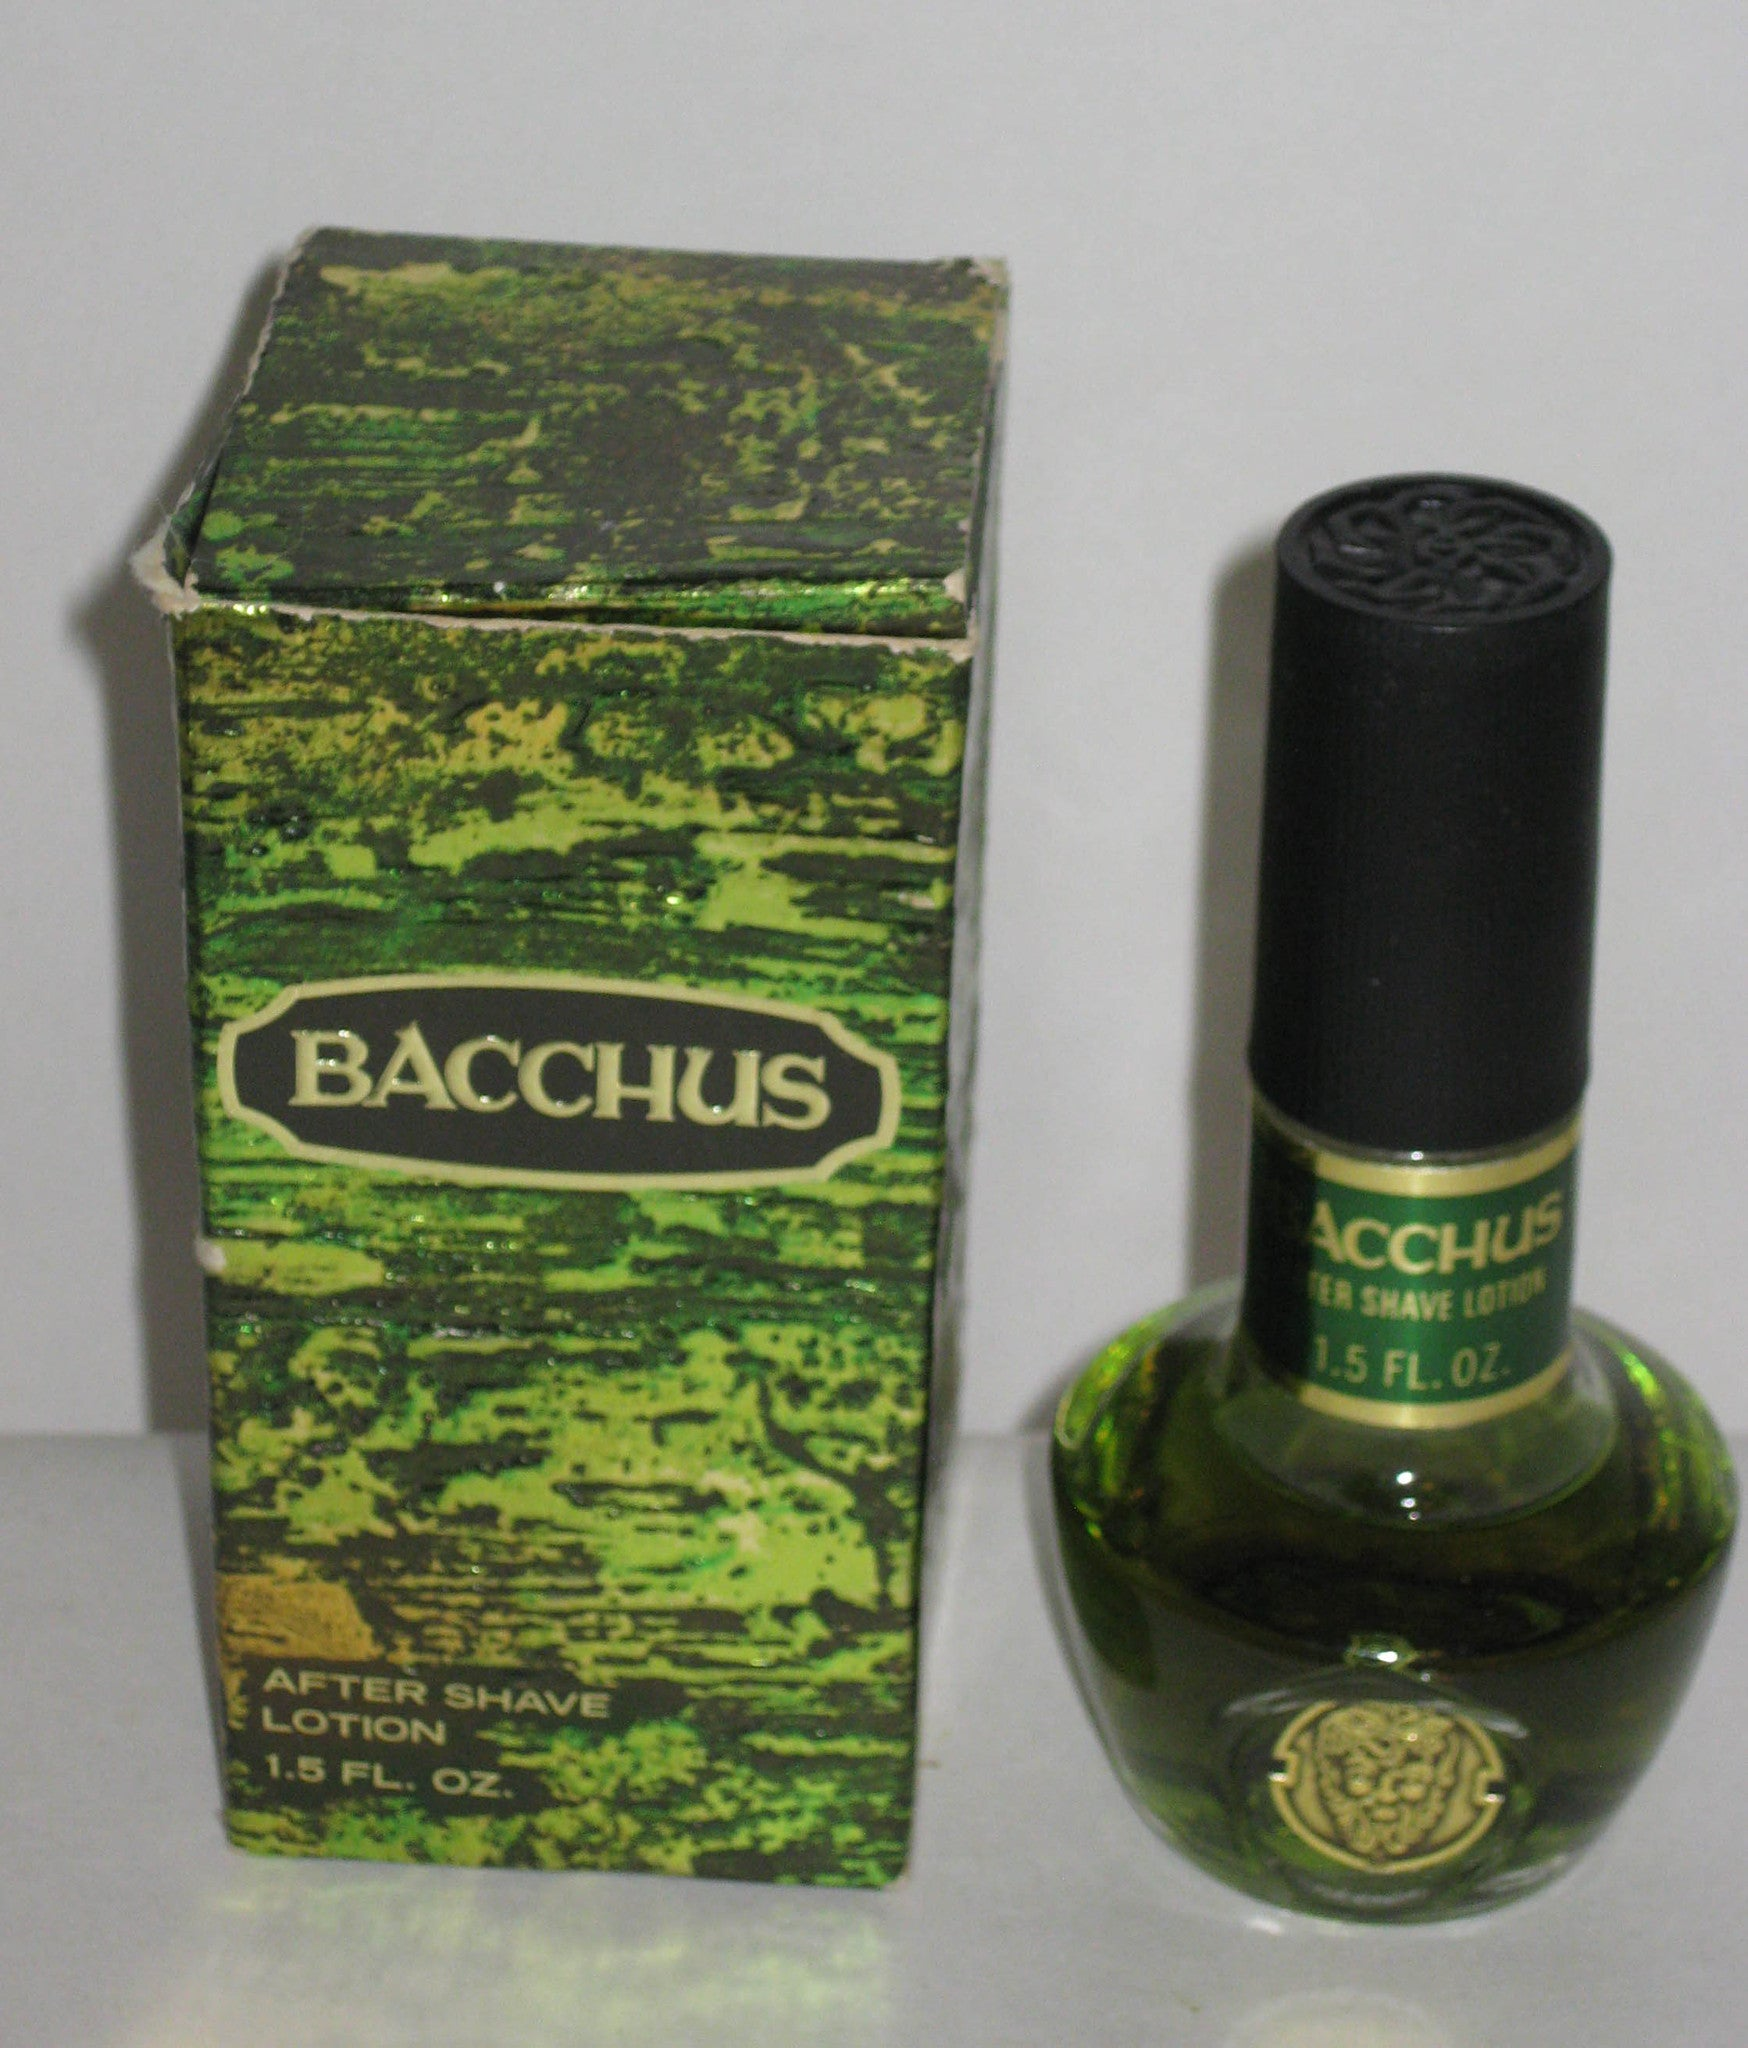 Vintage Bacchus After Shave Lotion